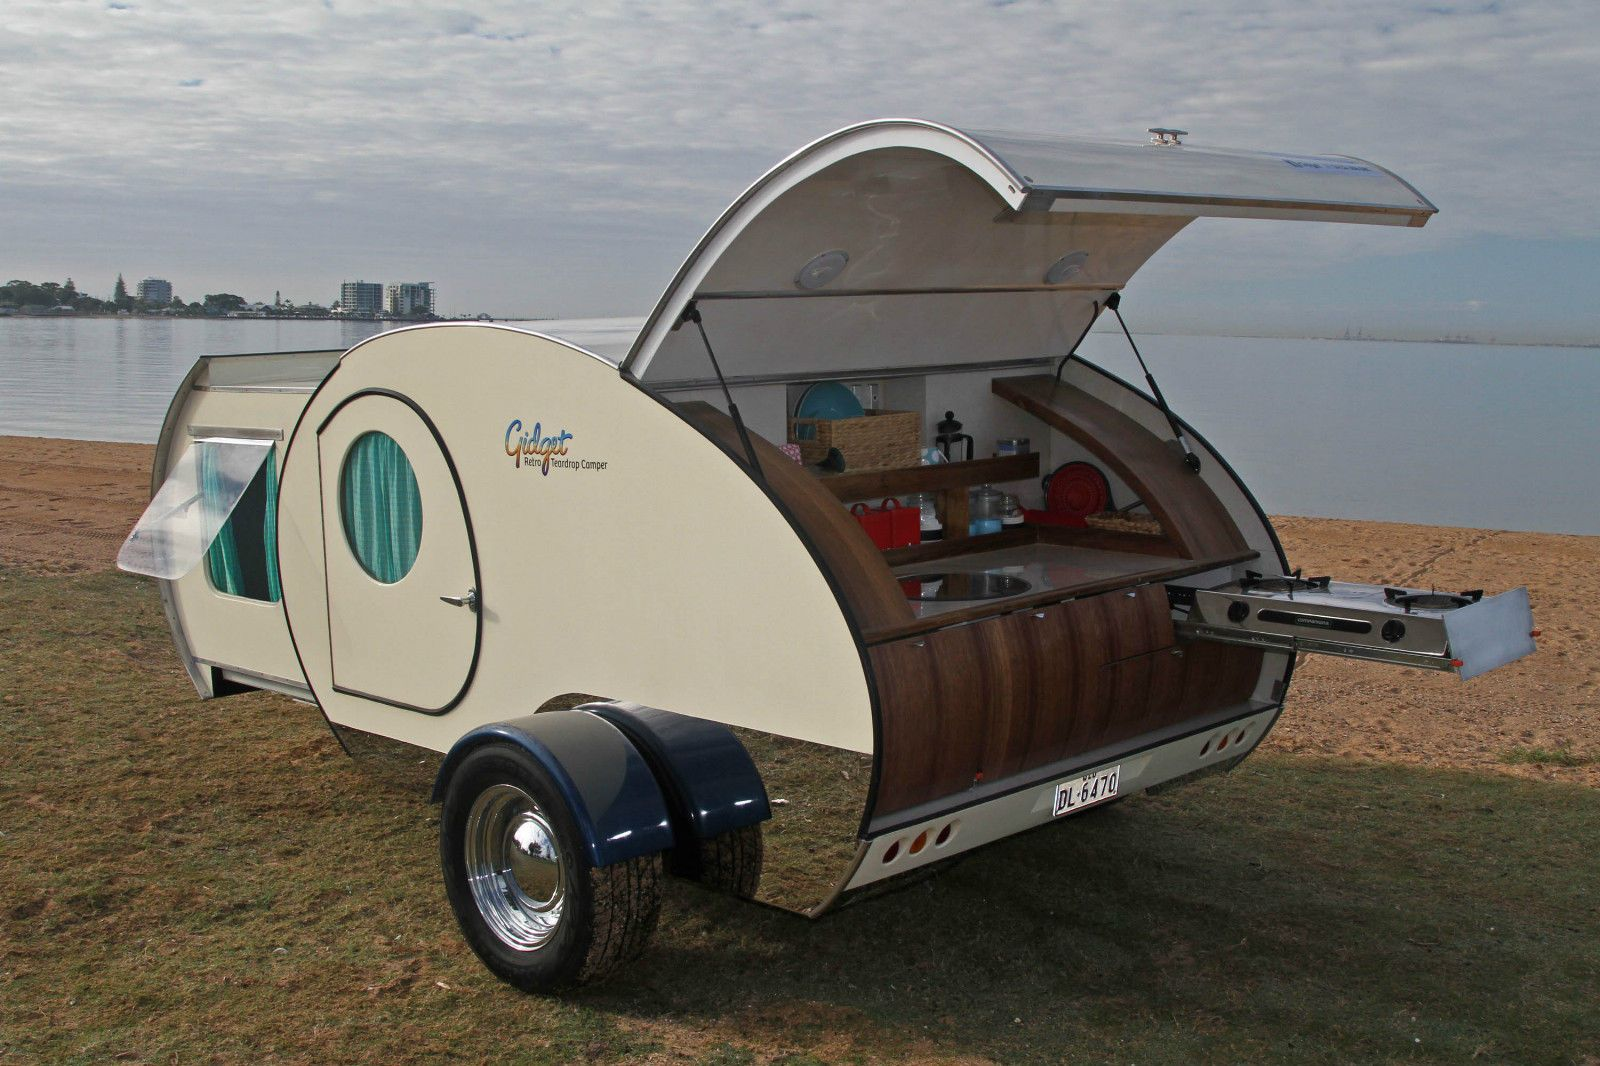 Gidget Retro Teardrop Camper Trailer Extended Will Wait For This To Be Available In Usa If We Don T Decide Make A Ourselves